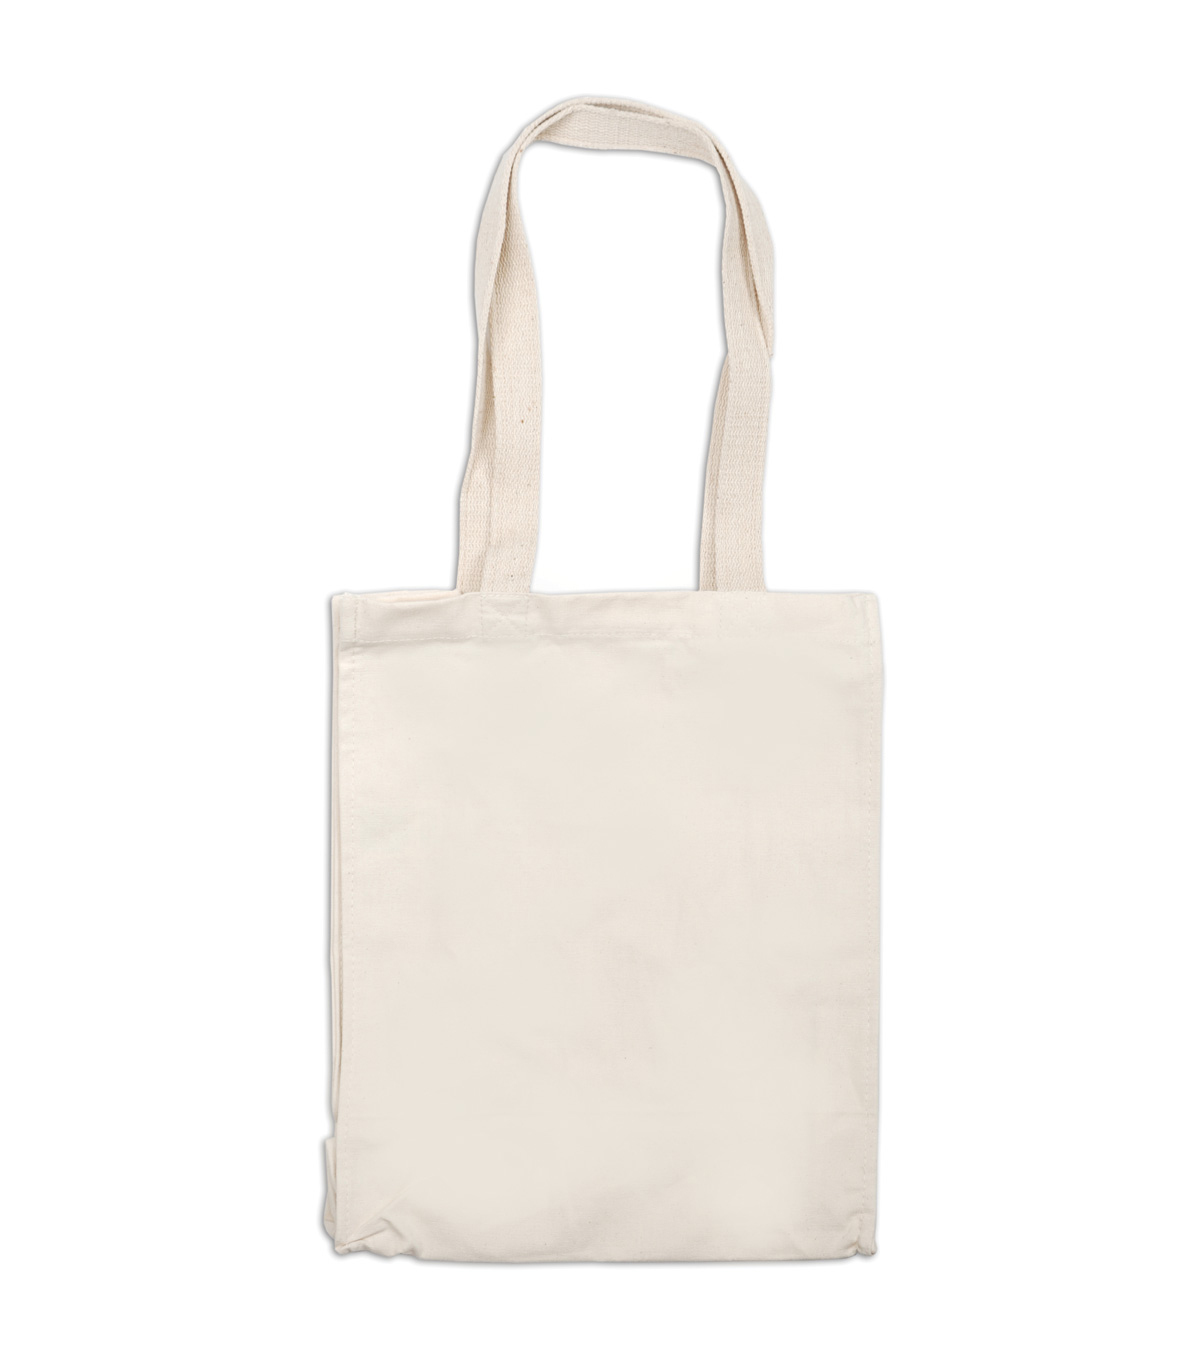 Affordable Bag Works Bag Works Canvas Tote Joann Canvas Tote Bags Crafts Logo Canvas Tote Bags inspiration Canvas Tote Bags